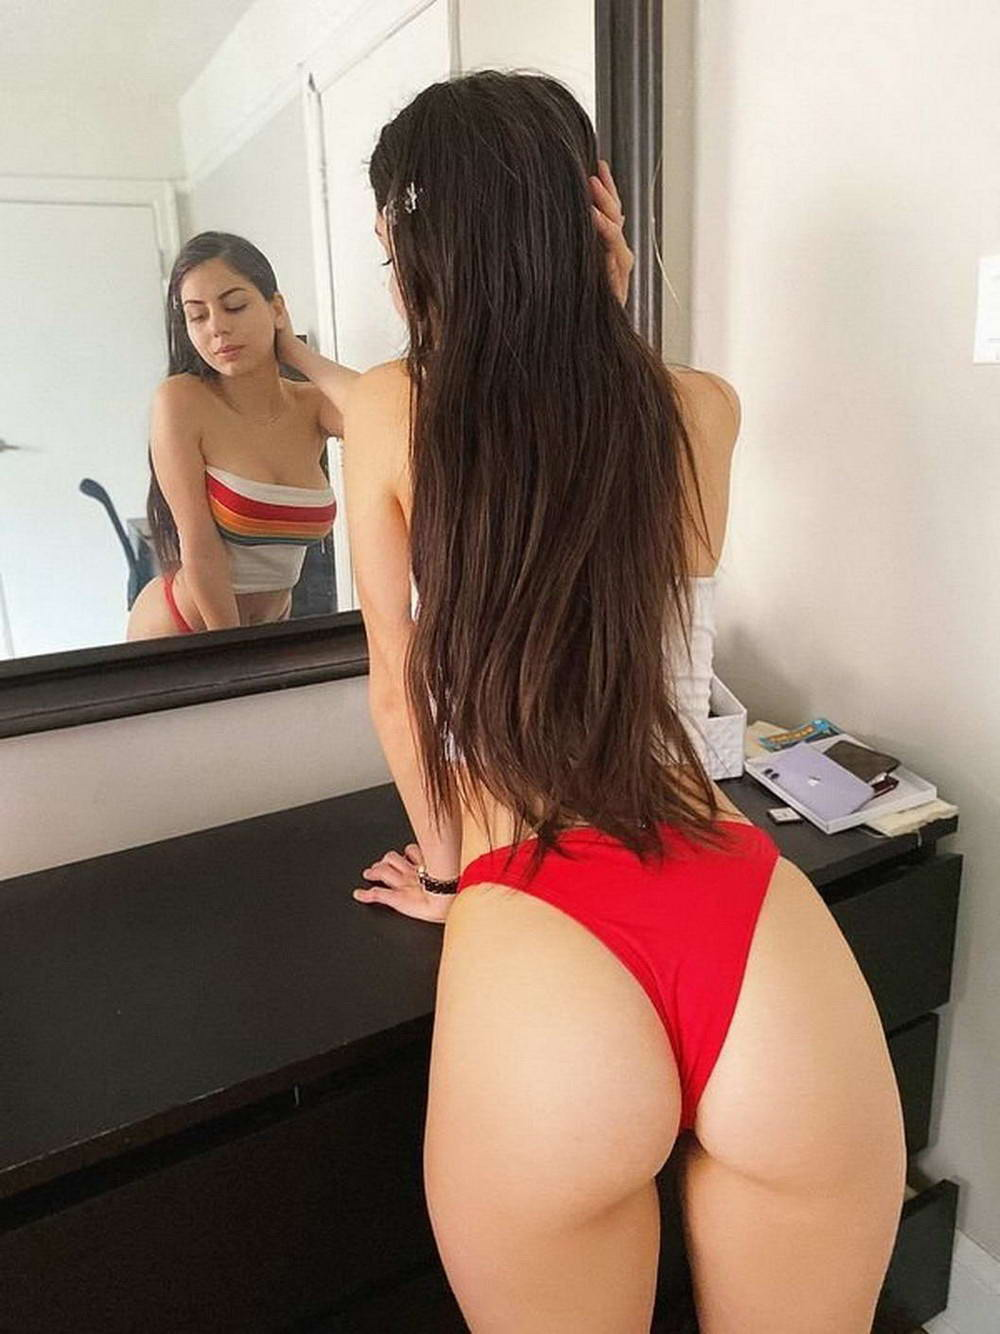 Hot Girls With Sexy Butts (61 Photos + 5 GIFs)